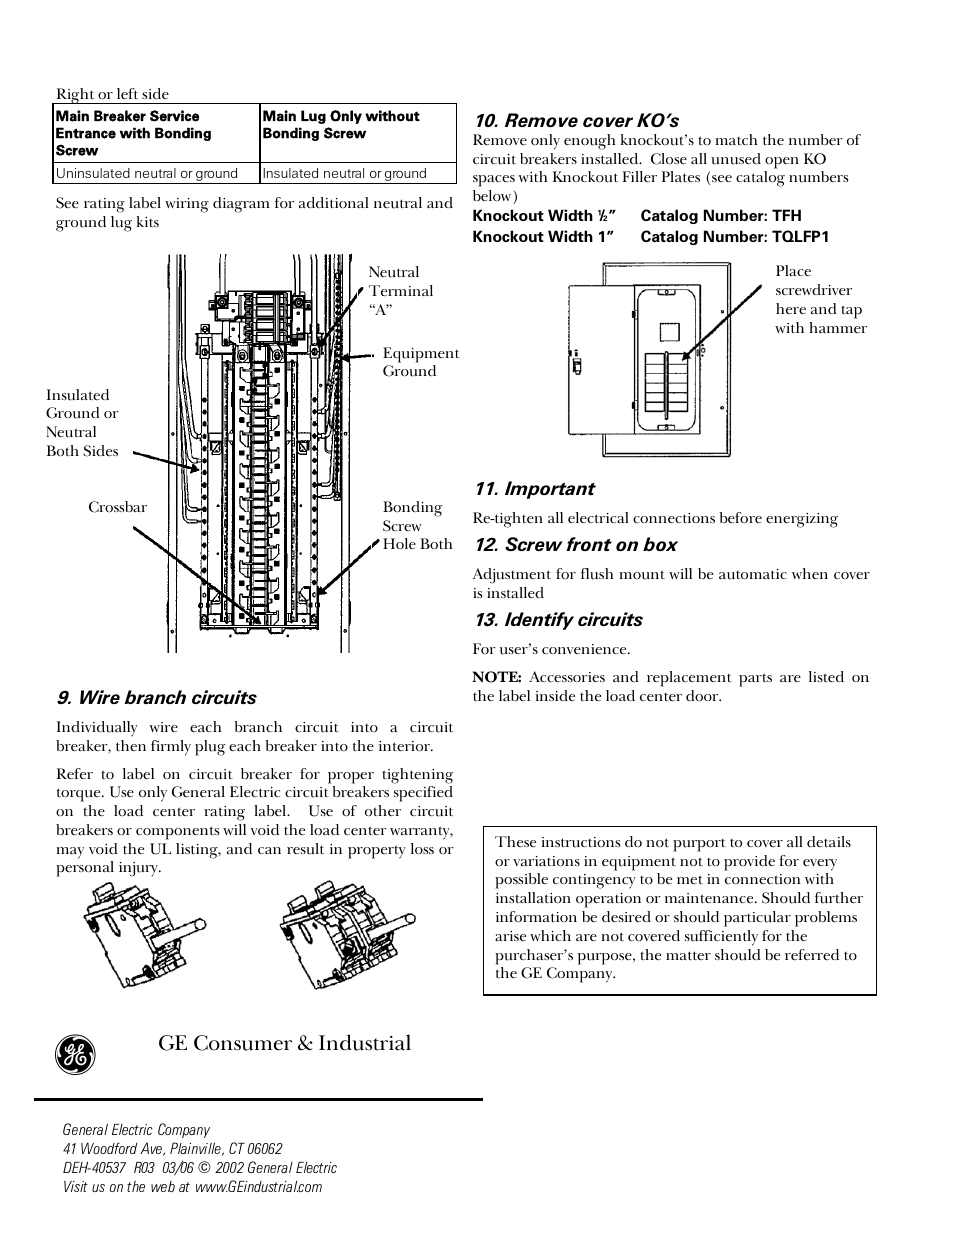 ge consumer & industrial | ge industrial solutions power mark gold load  centers user manual | page 2 / 4